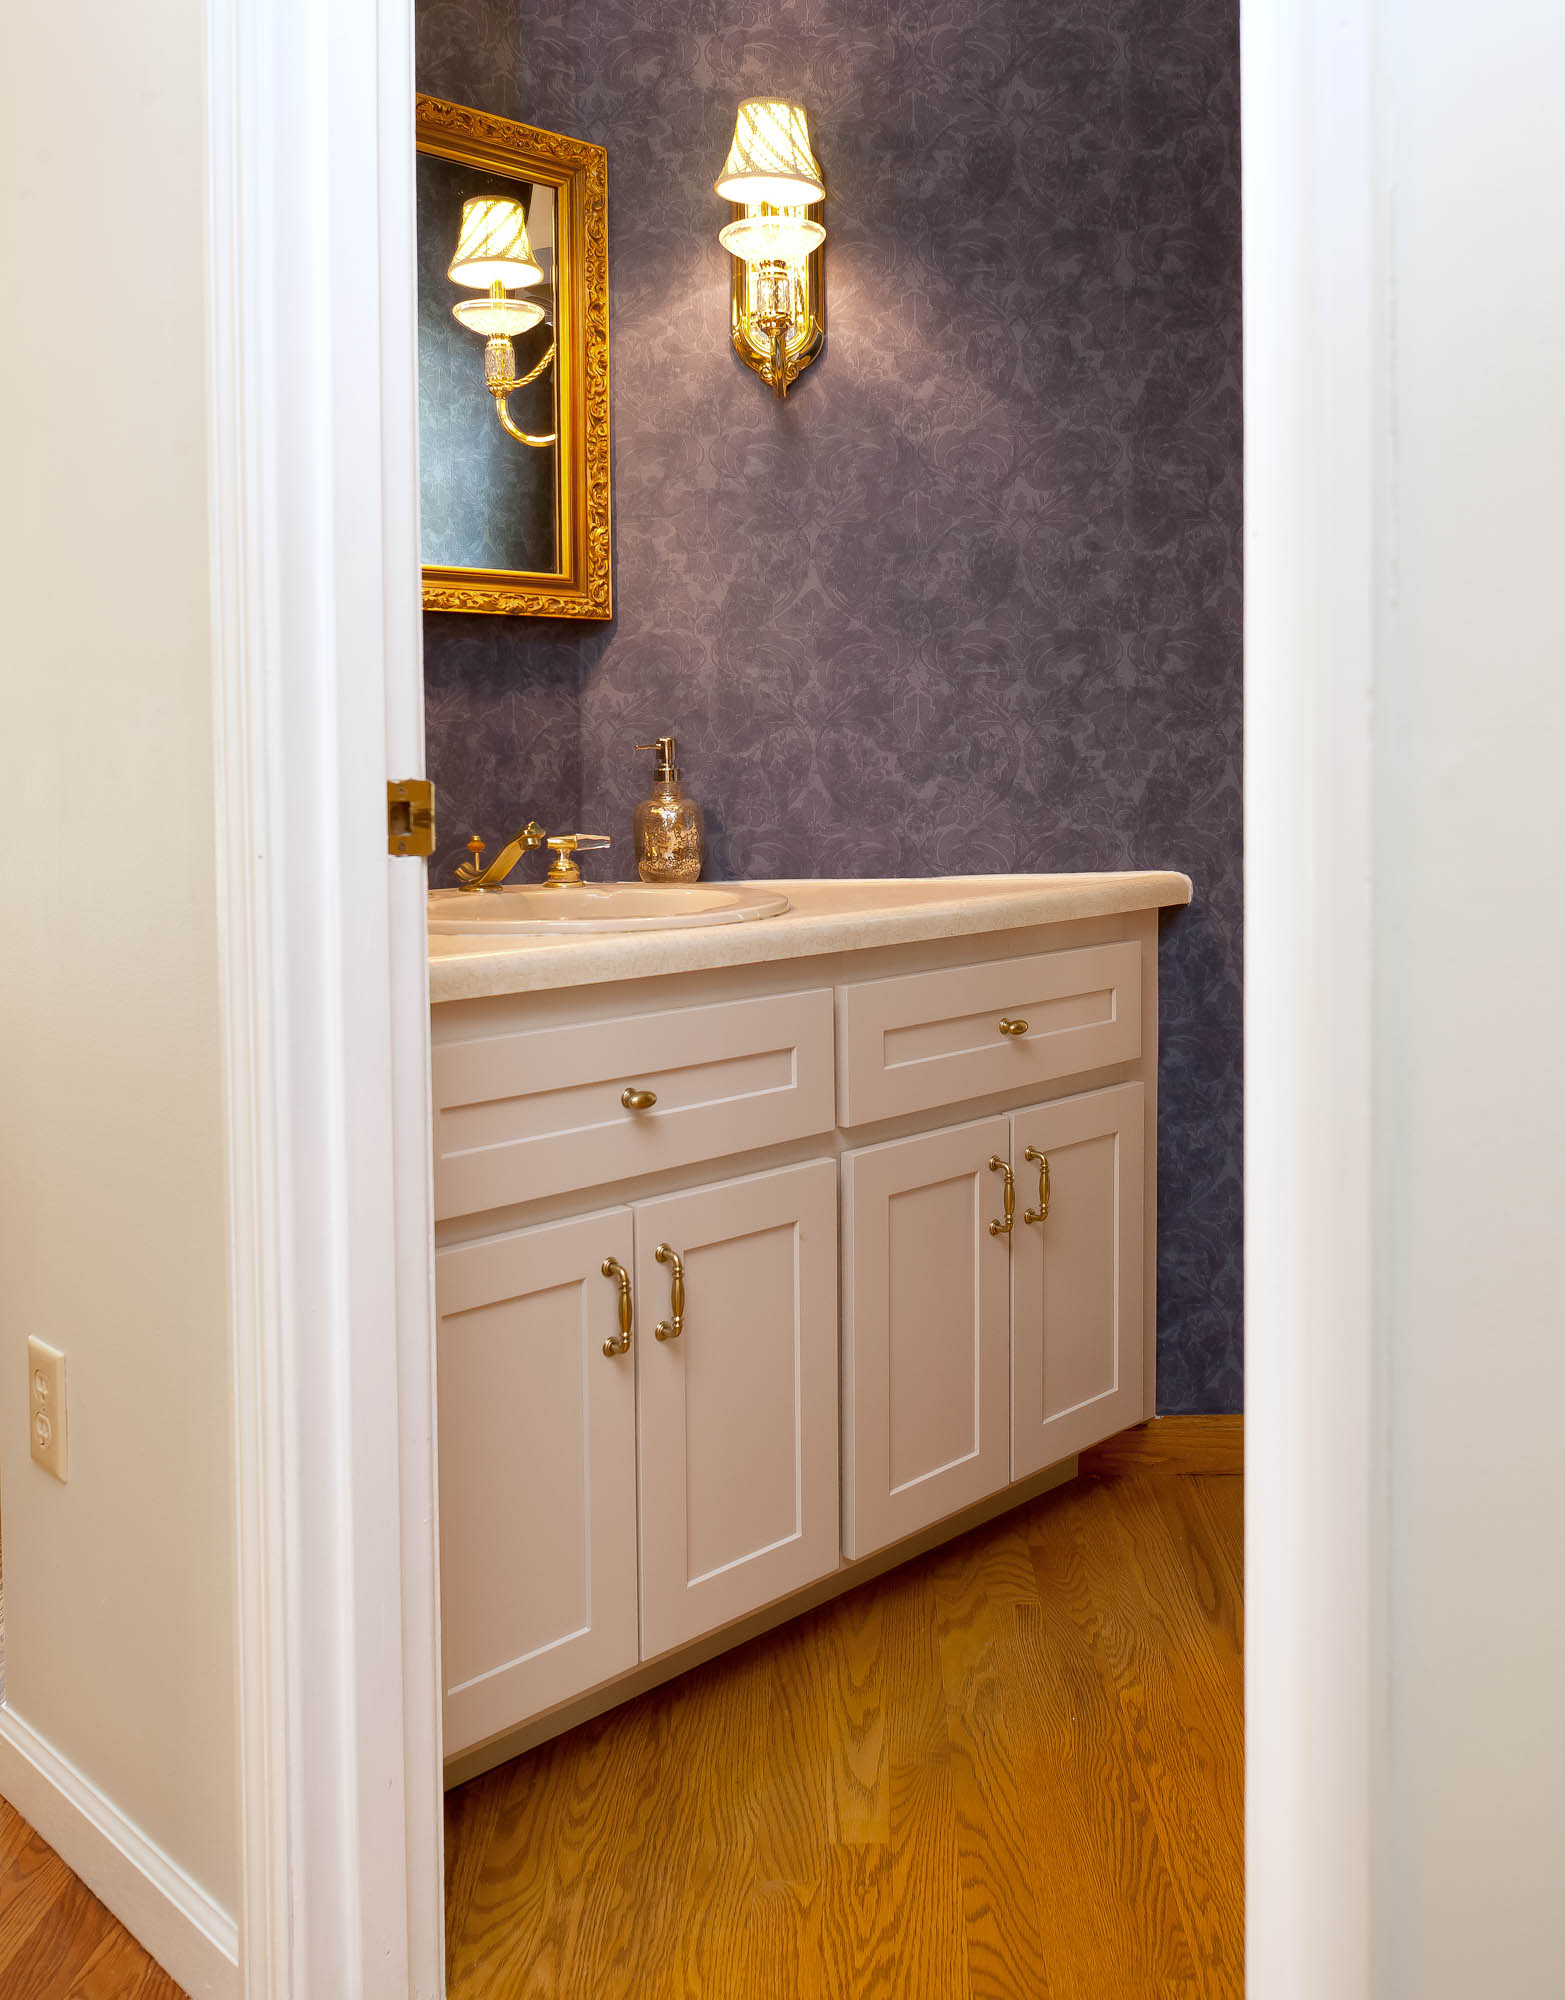 Renew | Painted bathroom vanity in Light Mocha by Showplace Cabinetry